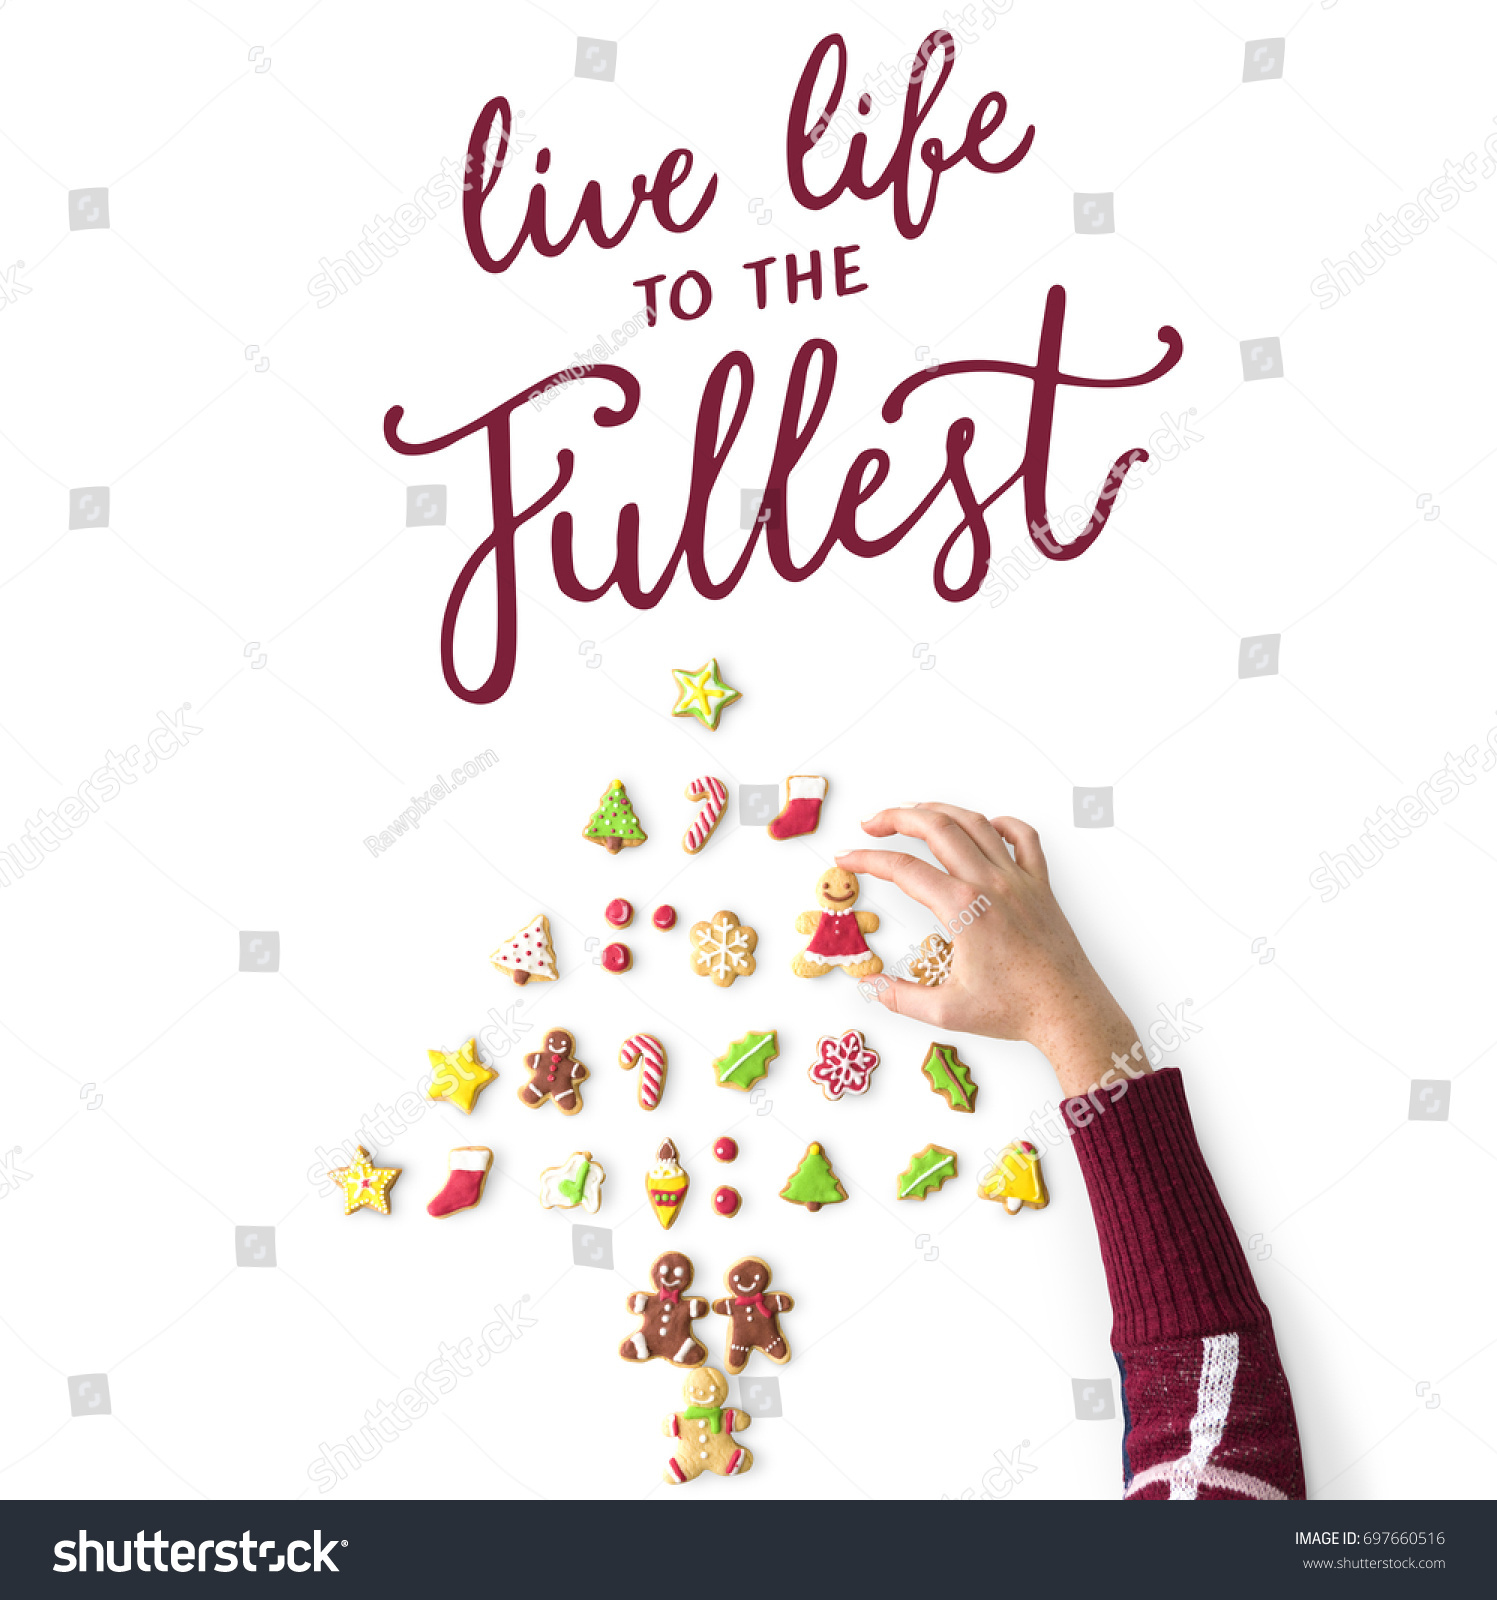 Live Life To The Fullest Quotes Live Life Fullest Quote Message Stock Photo 697660516  Shutterstock